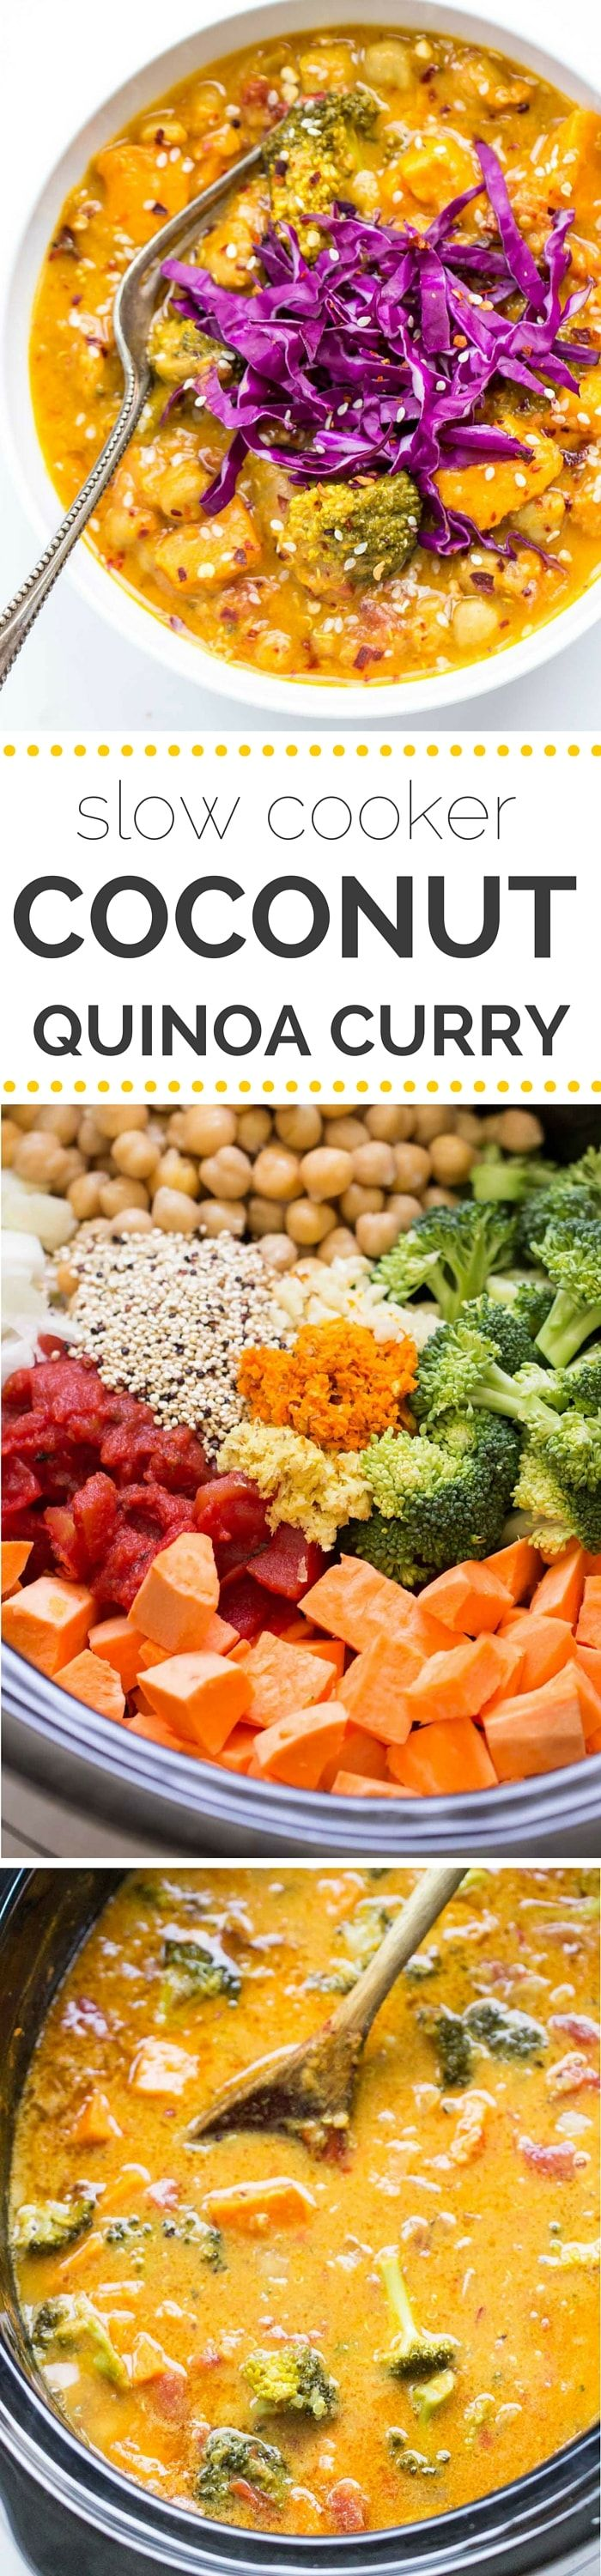 This healthy coconut quinoa curry is one of the easiest meals you'll ever make. Just toss all the ingredients in the slow cooker and let it…